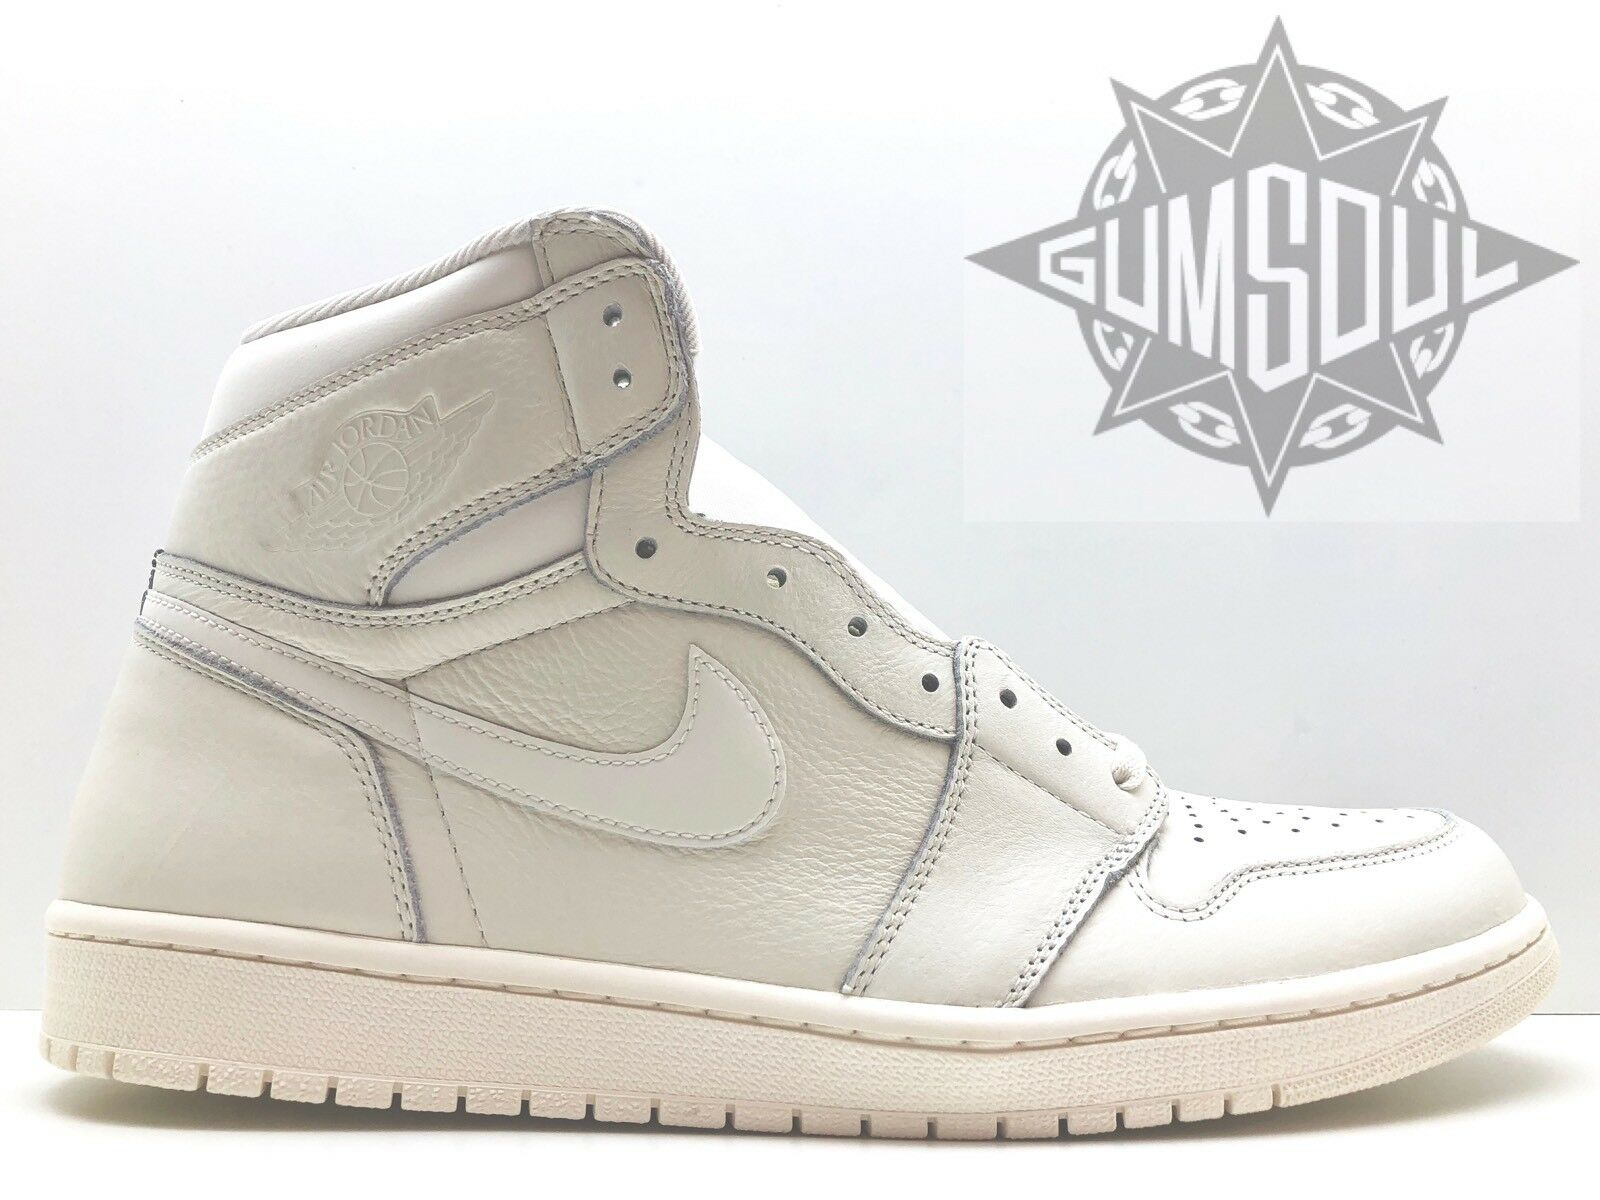 NIKE AIR JORDAN 1 RETRO HIGH OG SAIL UNIVERSITY RED 555088 114 Price reduction New shoes for men and women, limited time discount